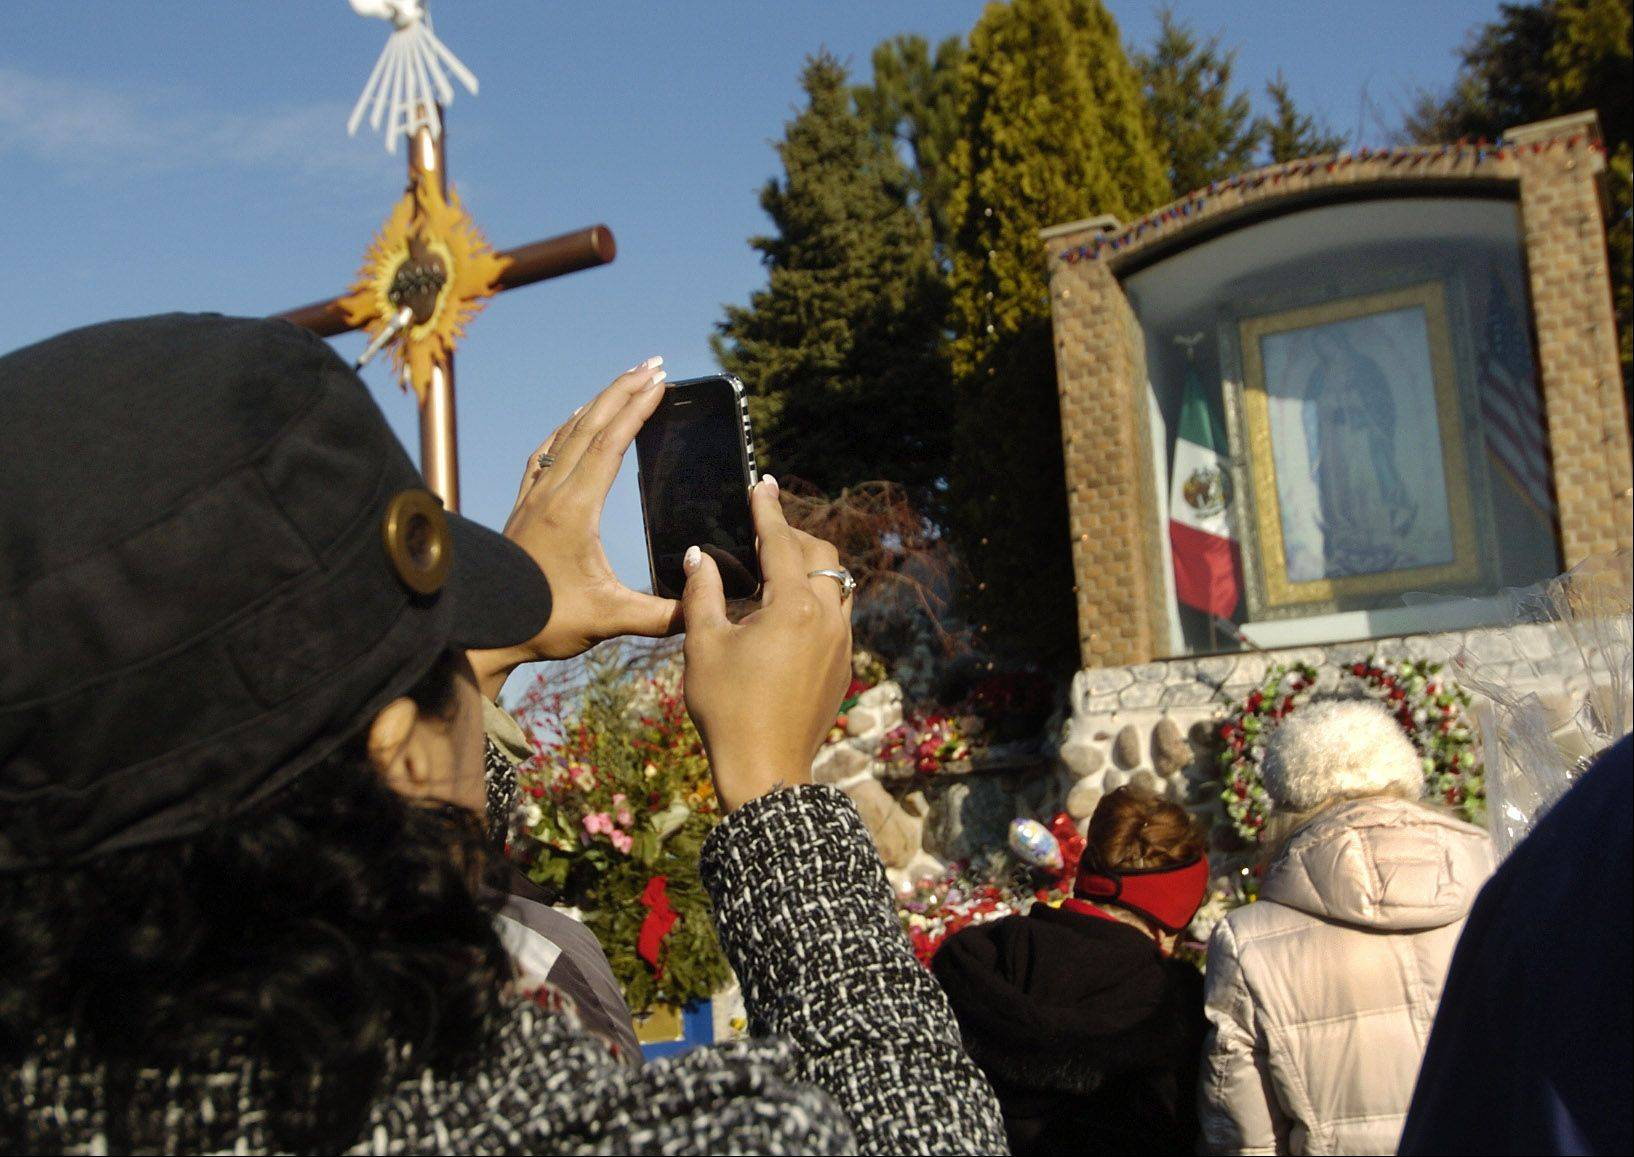 Maria Perez of Schaumburg takes a picture of the Shrine of Our Lady of Guadalupe in Des Plaines.